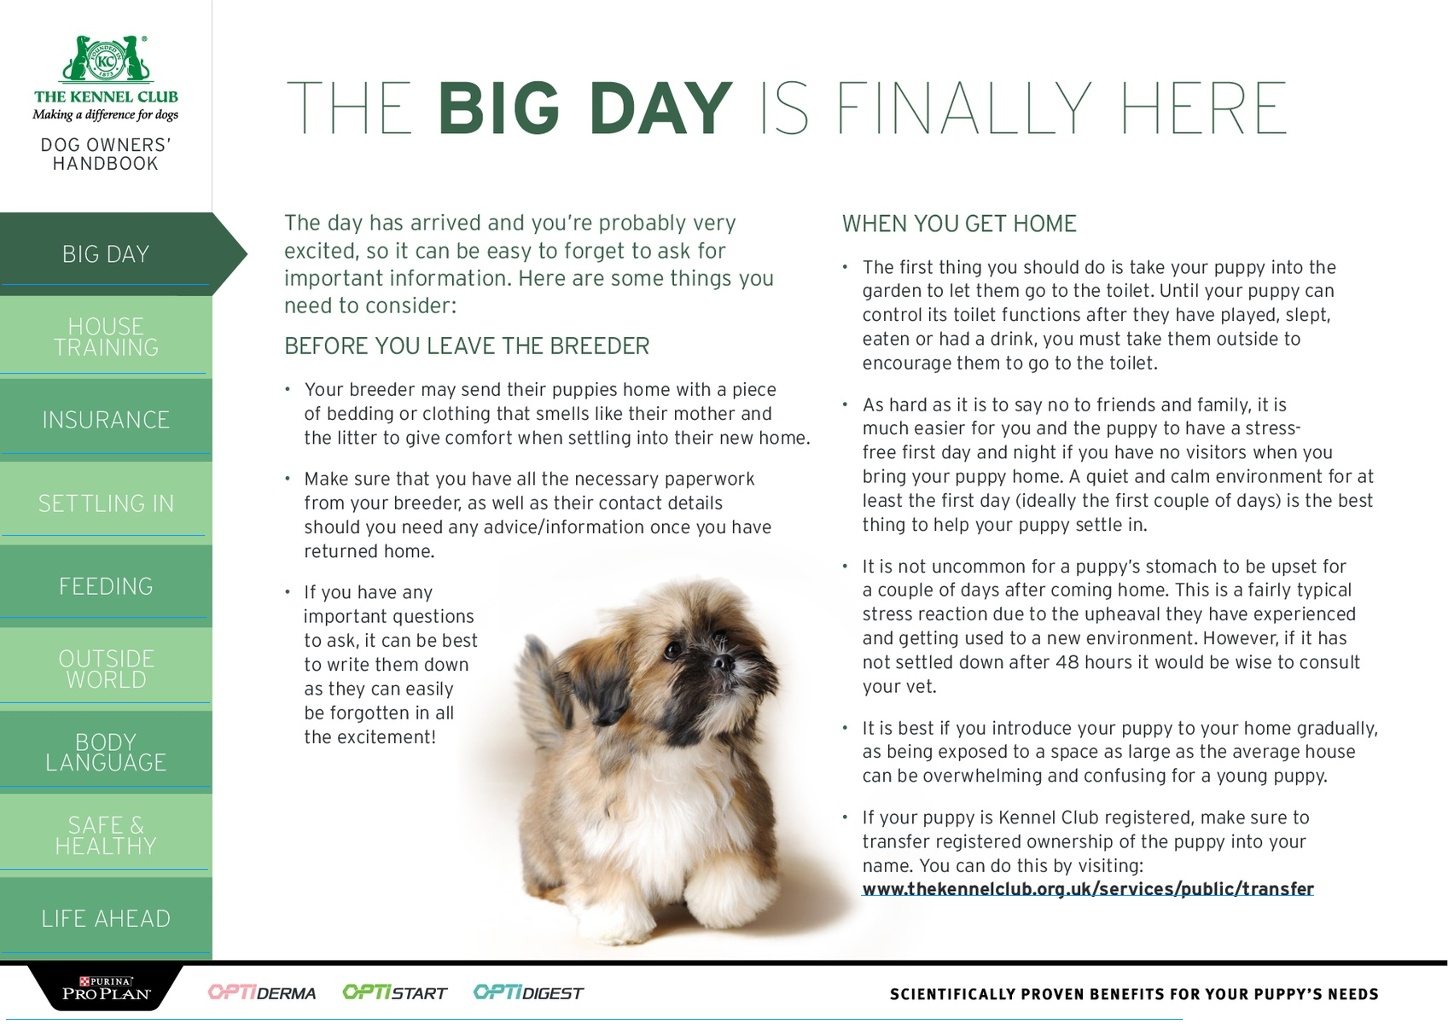 The Dog Owners' Handbook • The Kennel Club